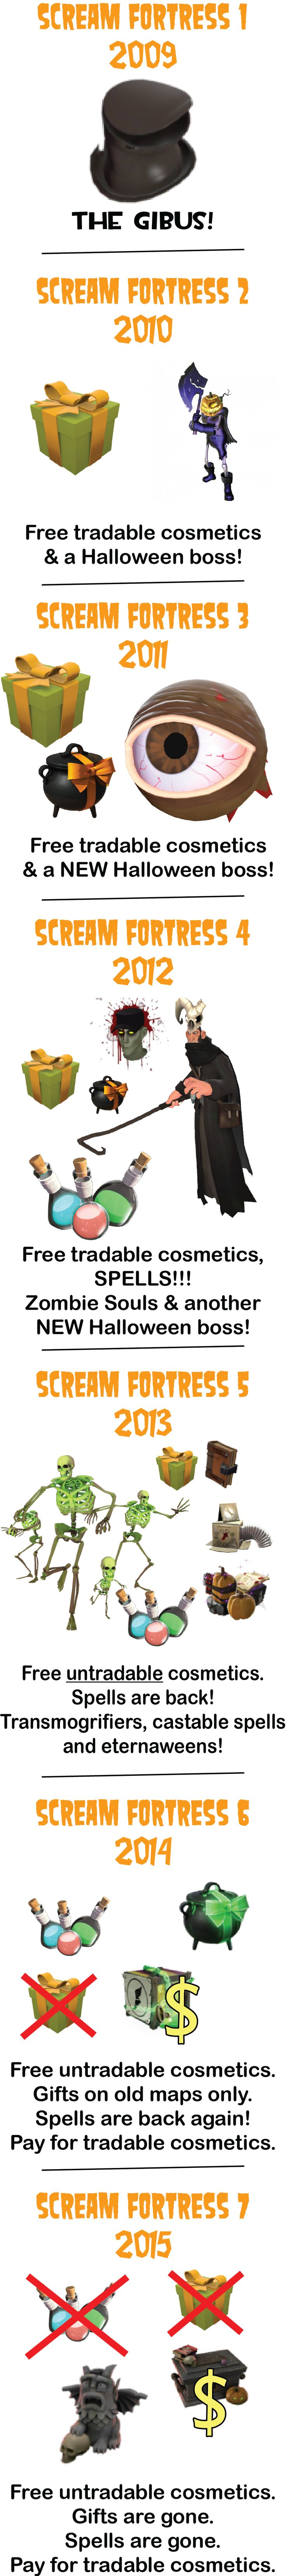 The rise (and fall) of Scream Fortress #games #teamfortress2 #steam #tf2 #SteamNewRelease #gaming #Valve